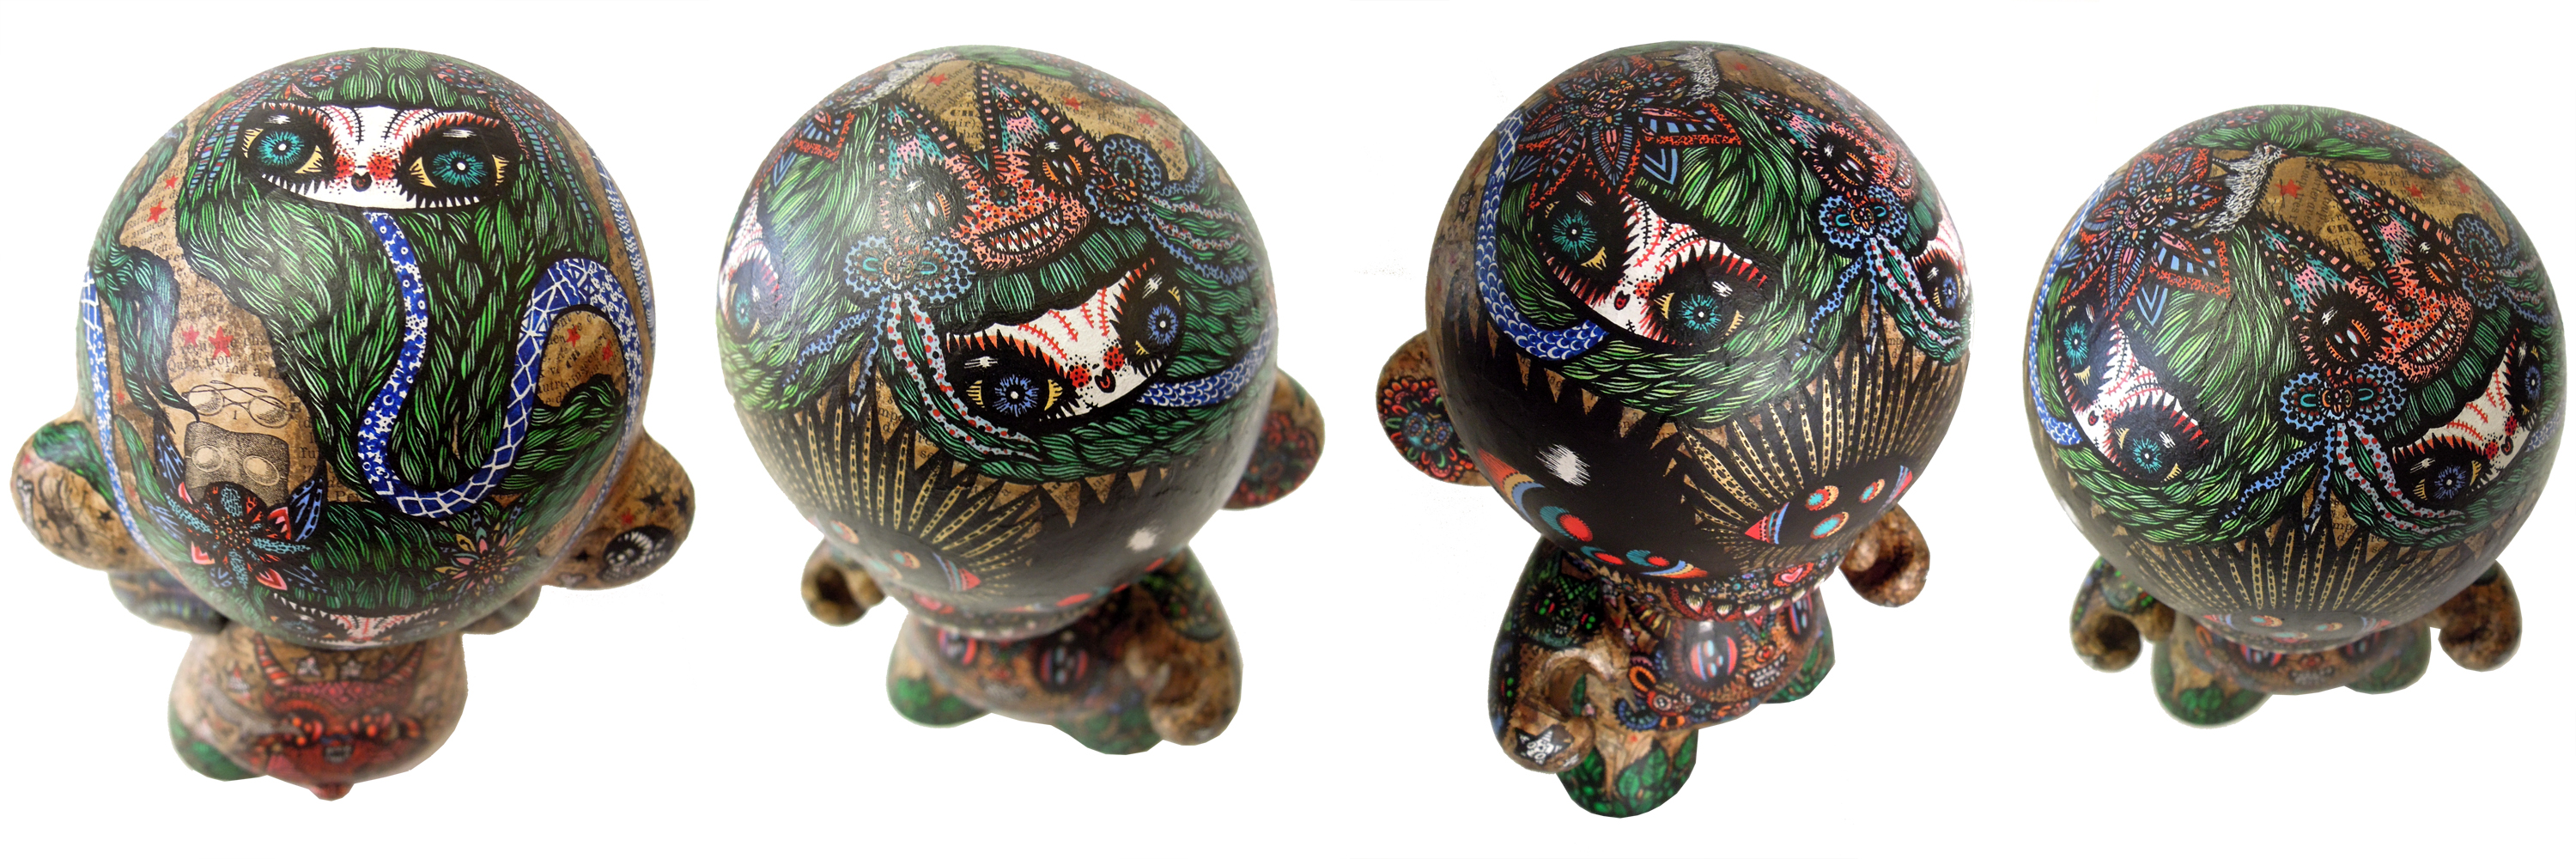 munny-ciou-custom-other-side-web